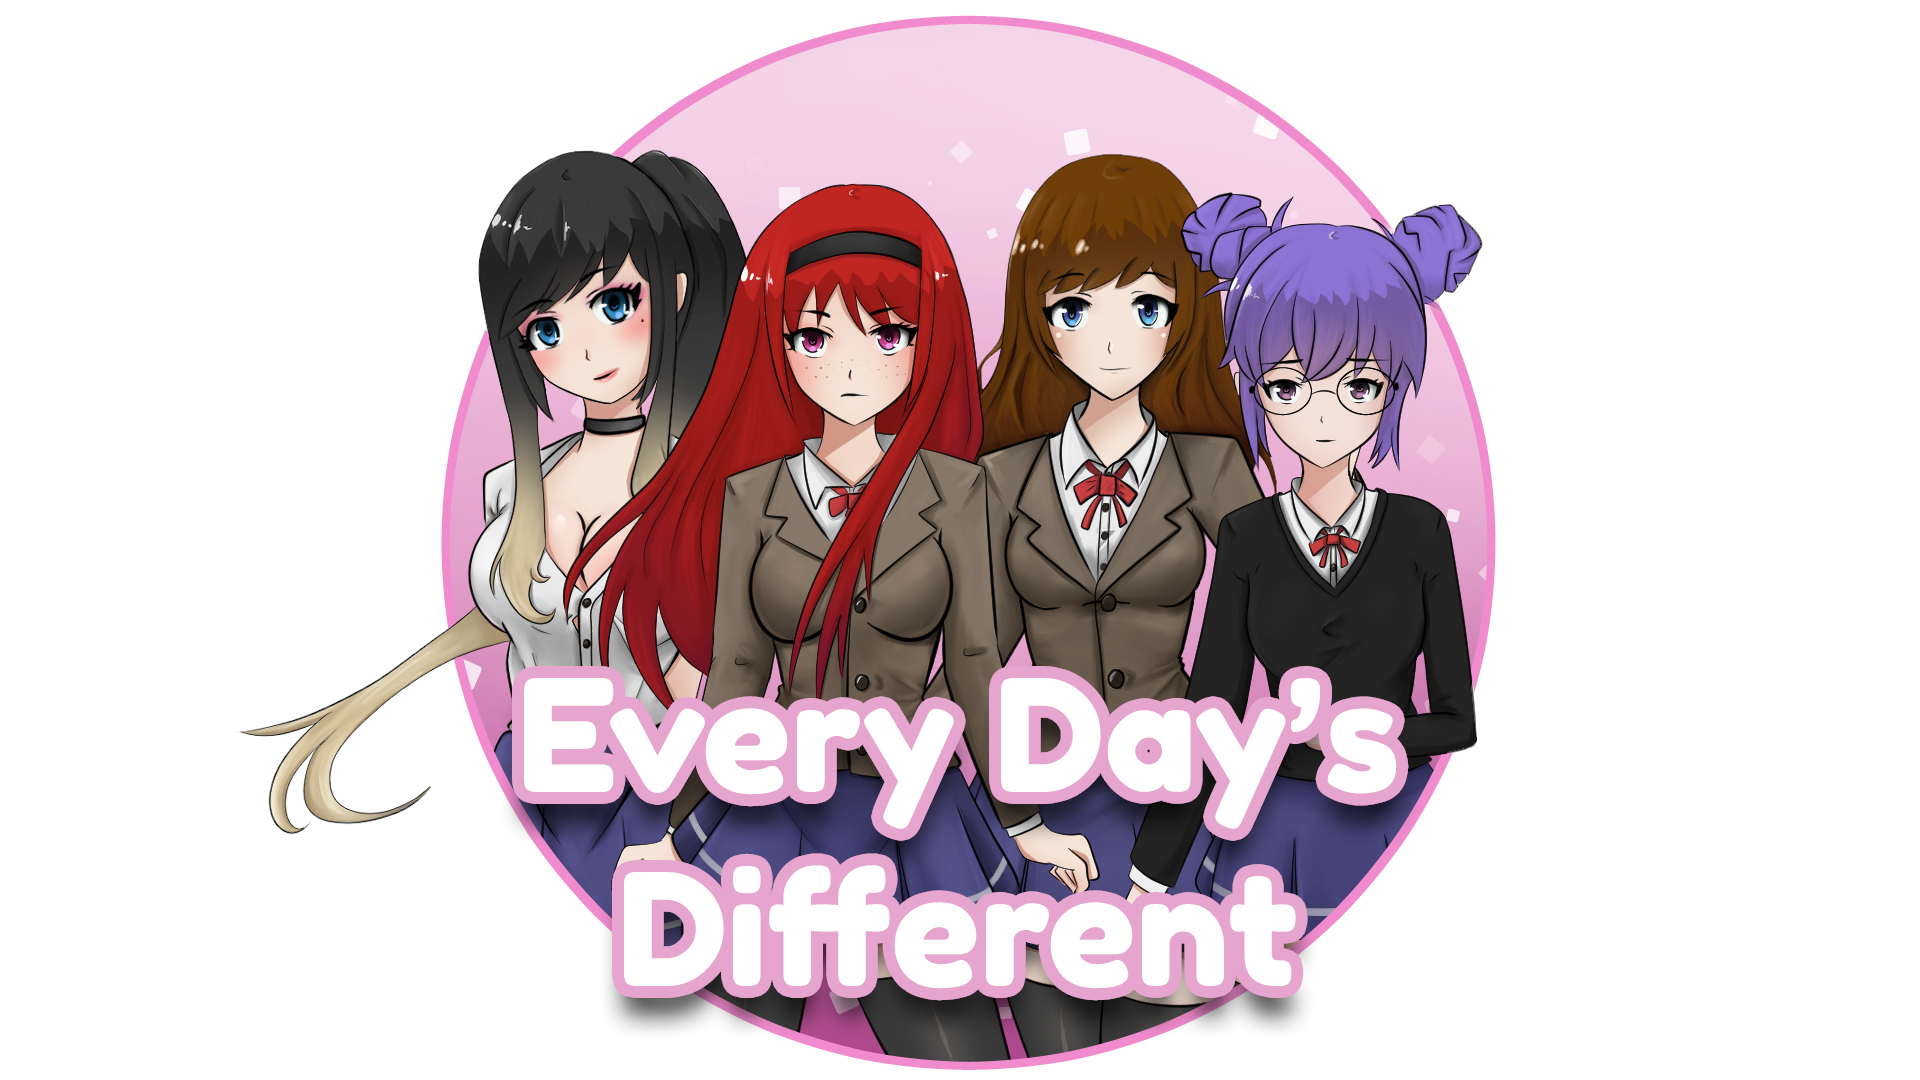 Every Day's Different